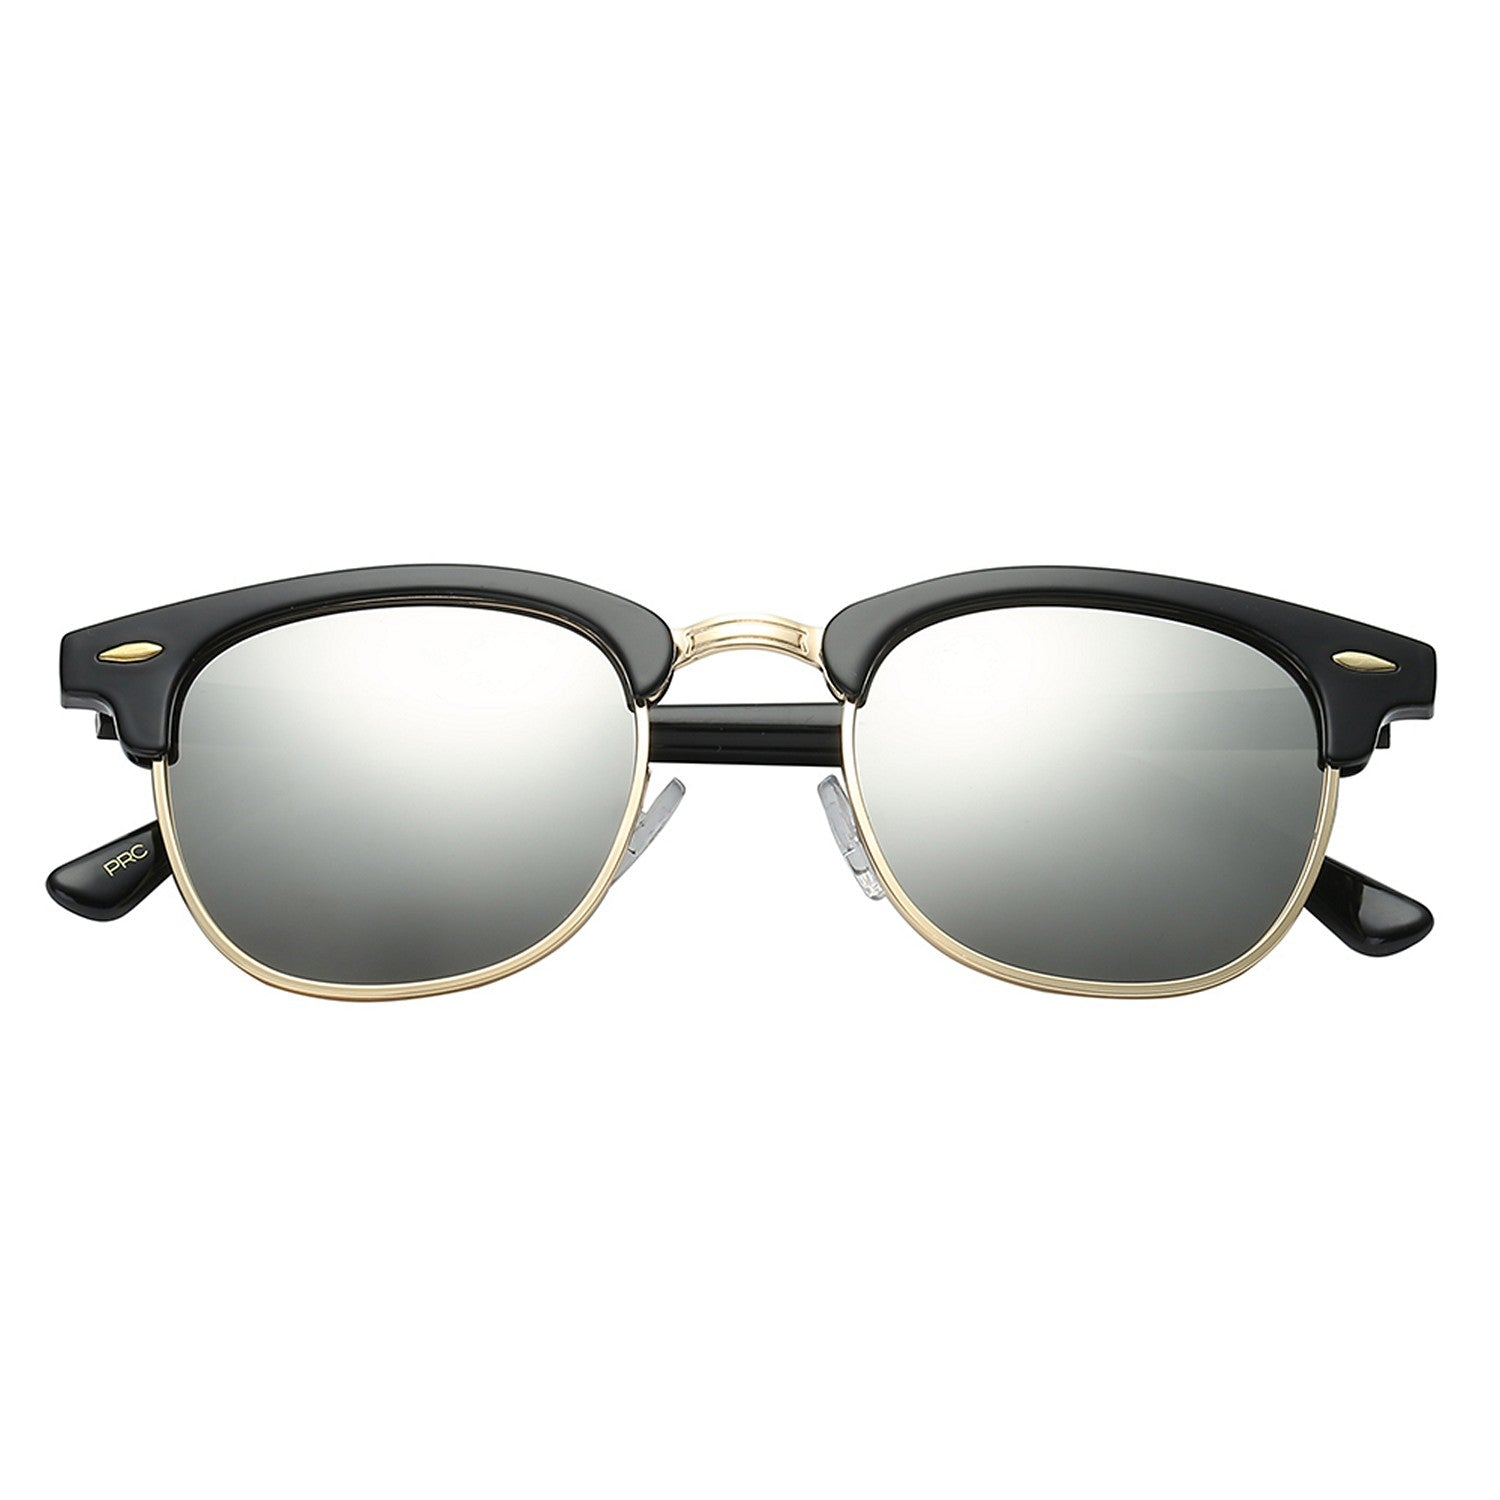 Polarspex Polarized Malcom Half Frame Semi-Rimless Style Unisex Sunglasses with Gloss Black Frames and Ice Tech Lenses